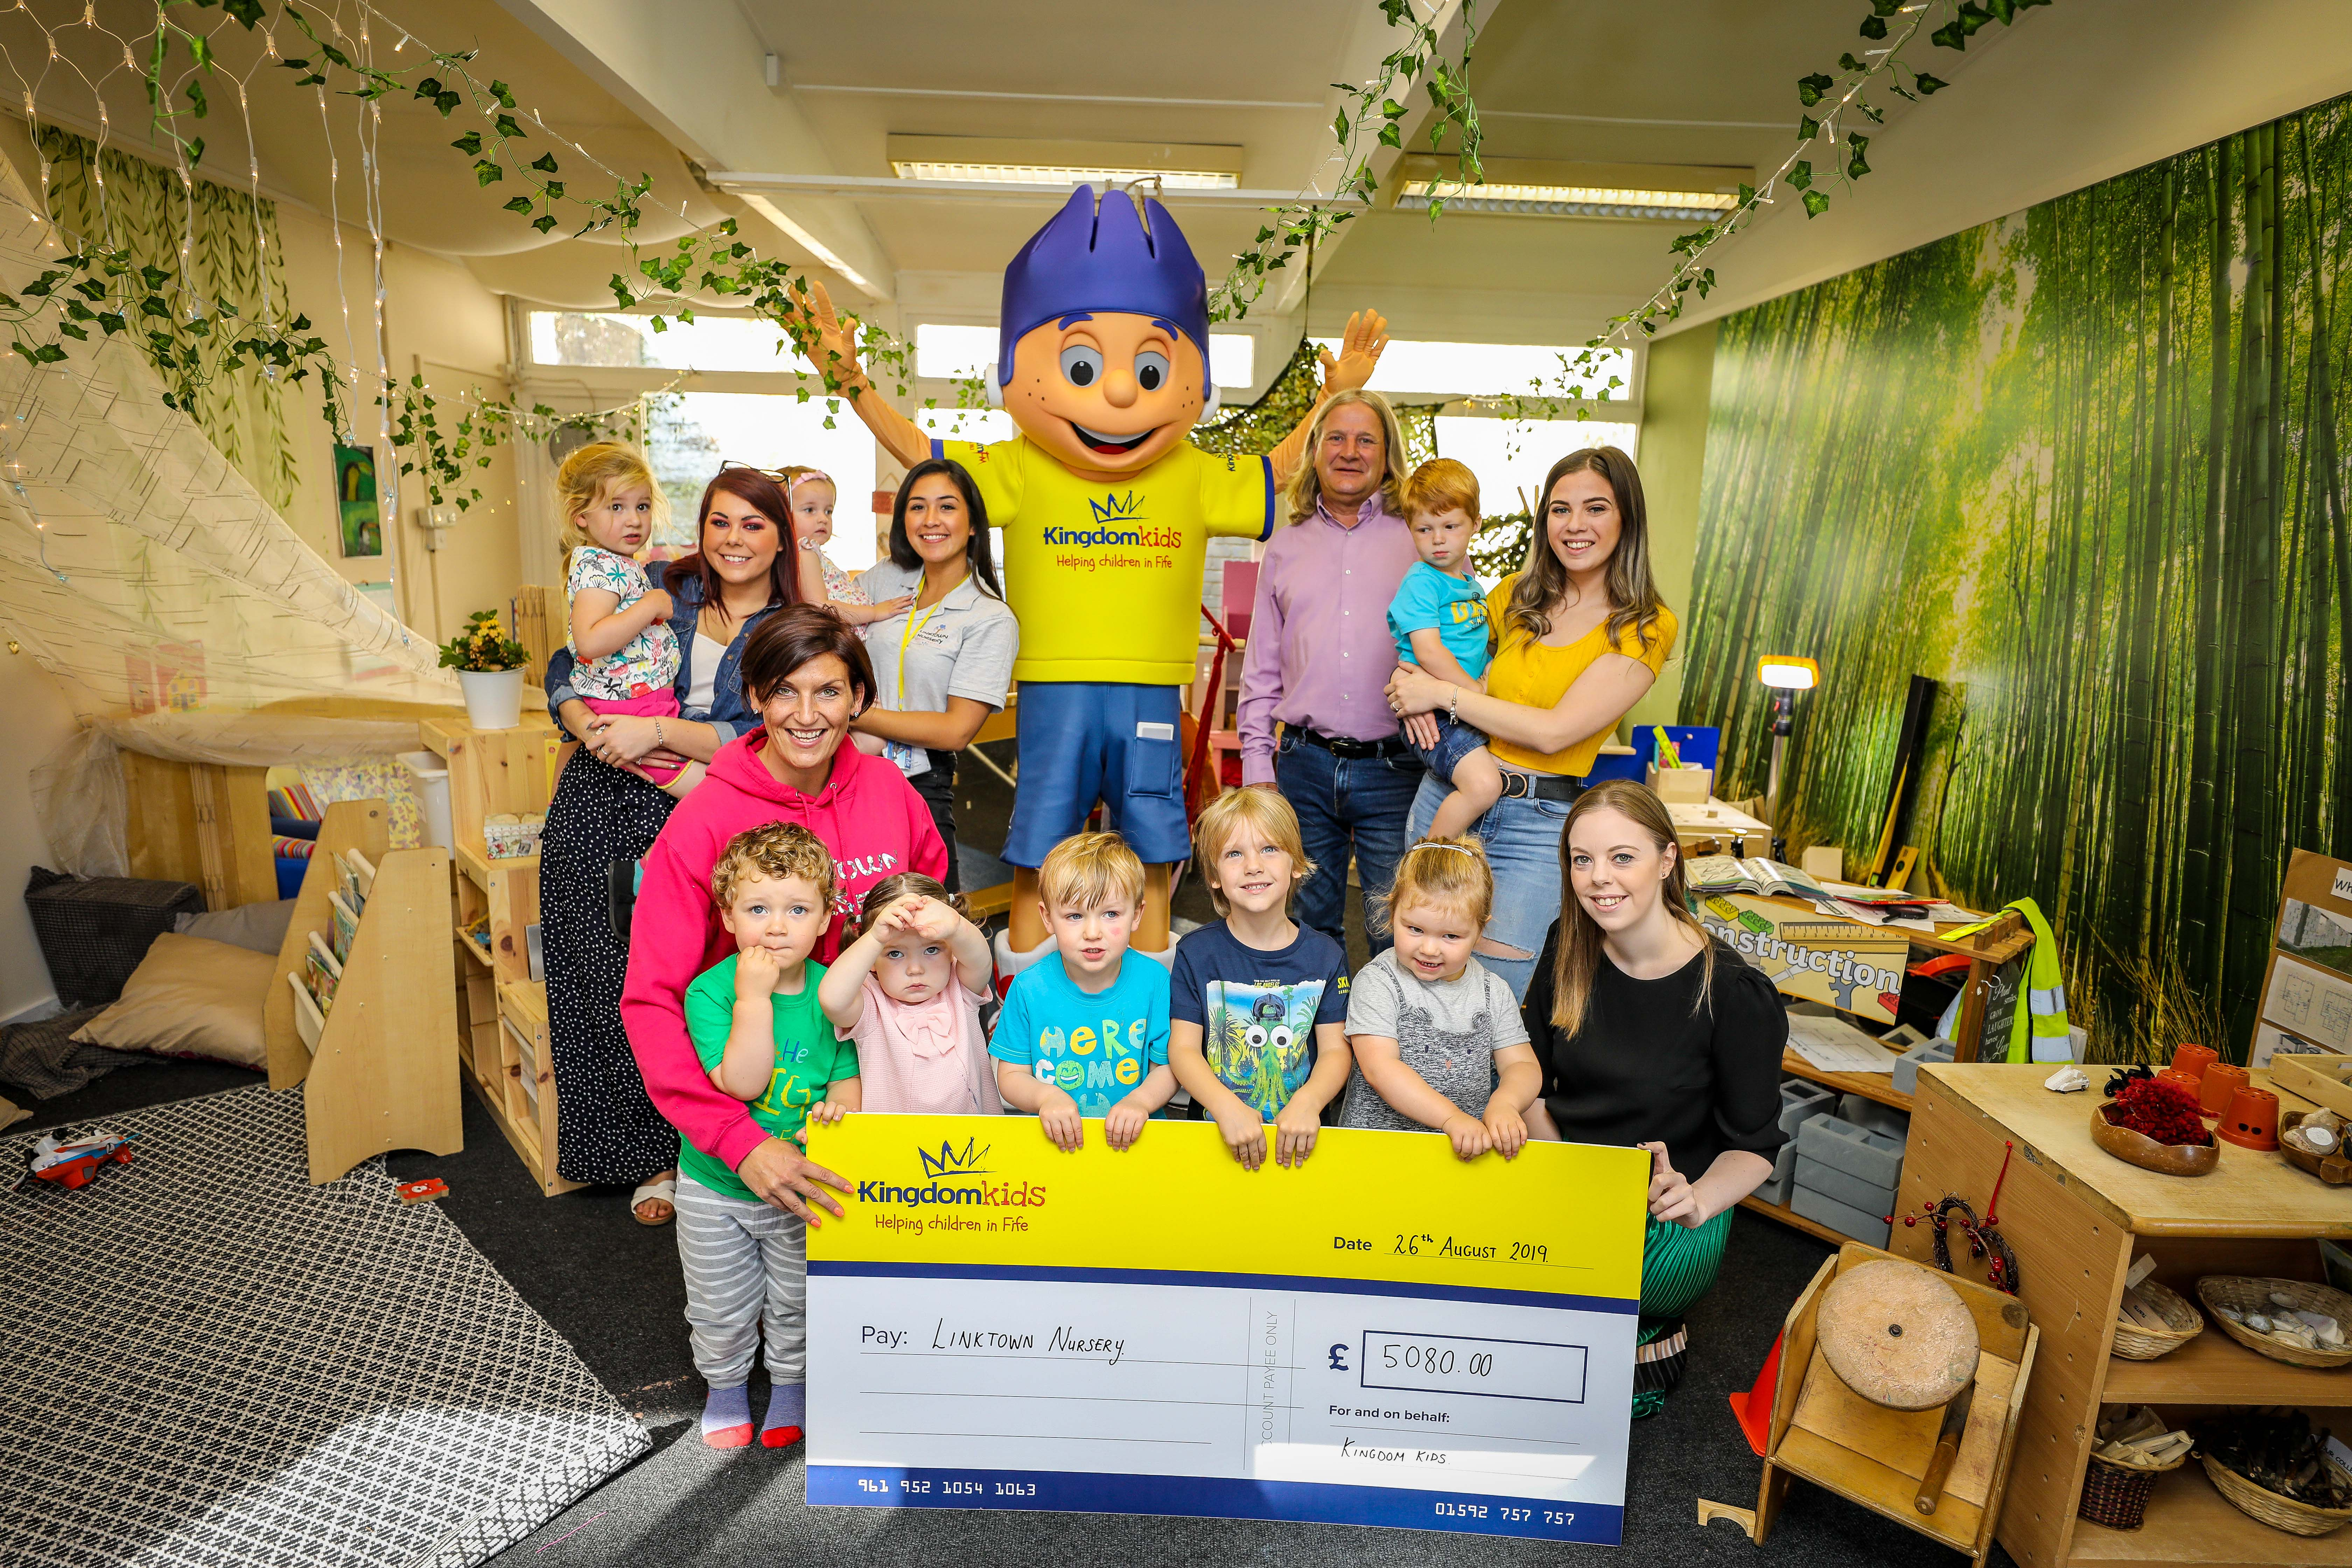 Linktown Nursery in Kirkcaldy was awarded £5080 in goods for the nursery. Staff and kids who use the service along with Kingdom Kids Mascot.